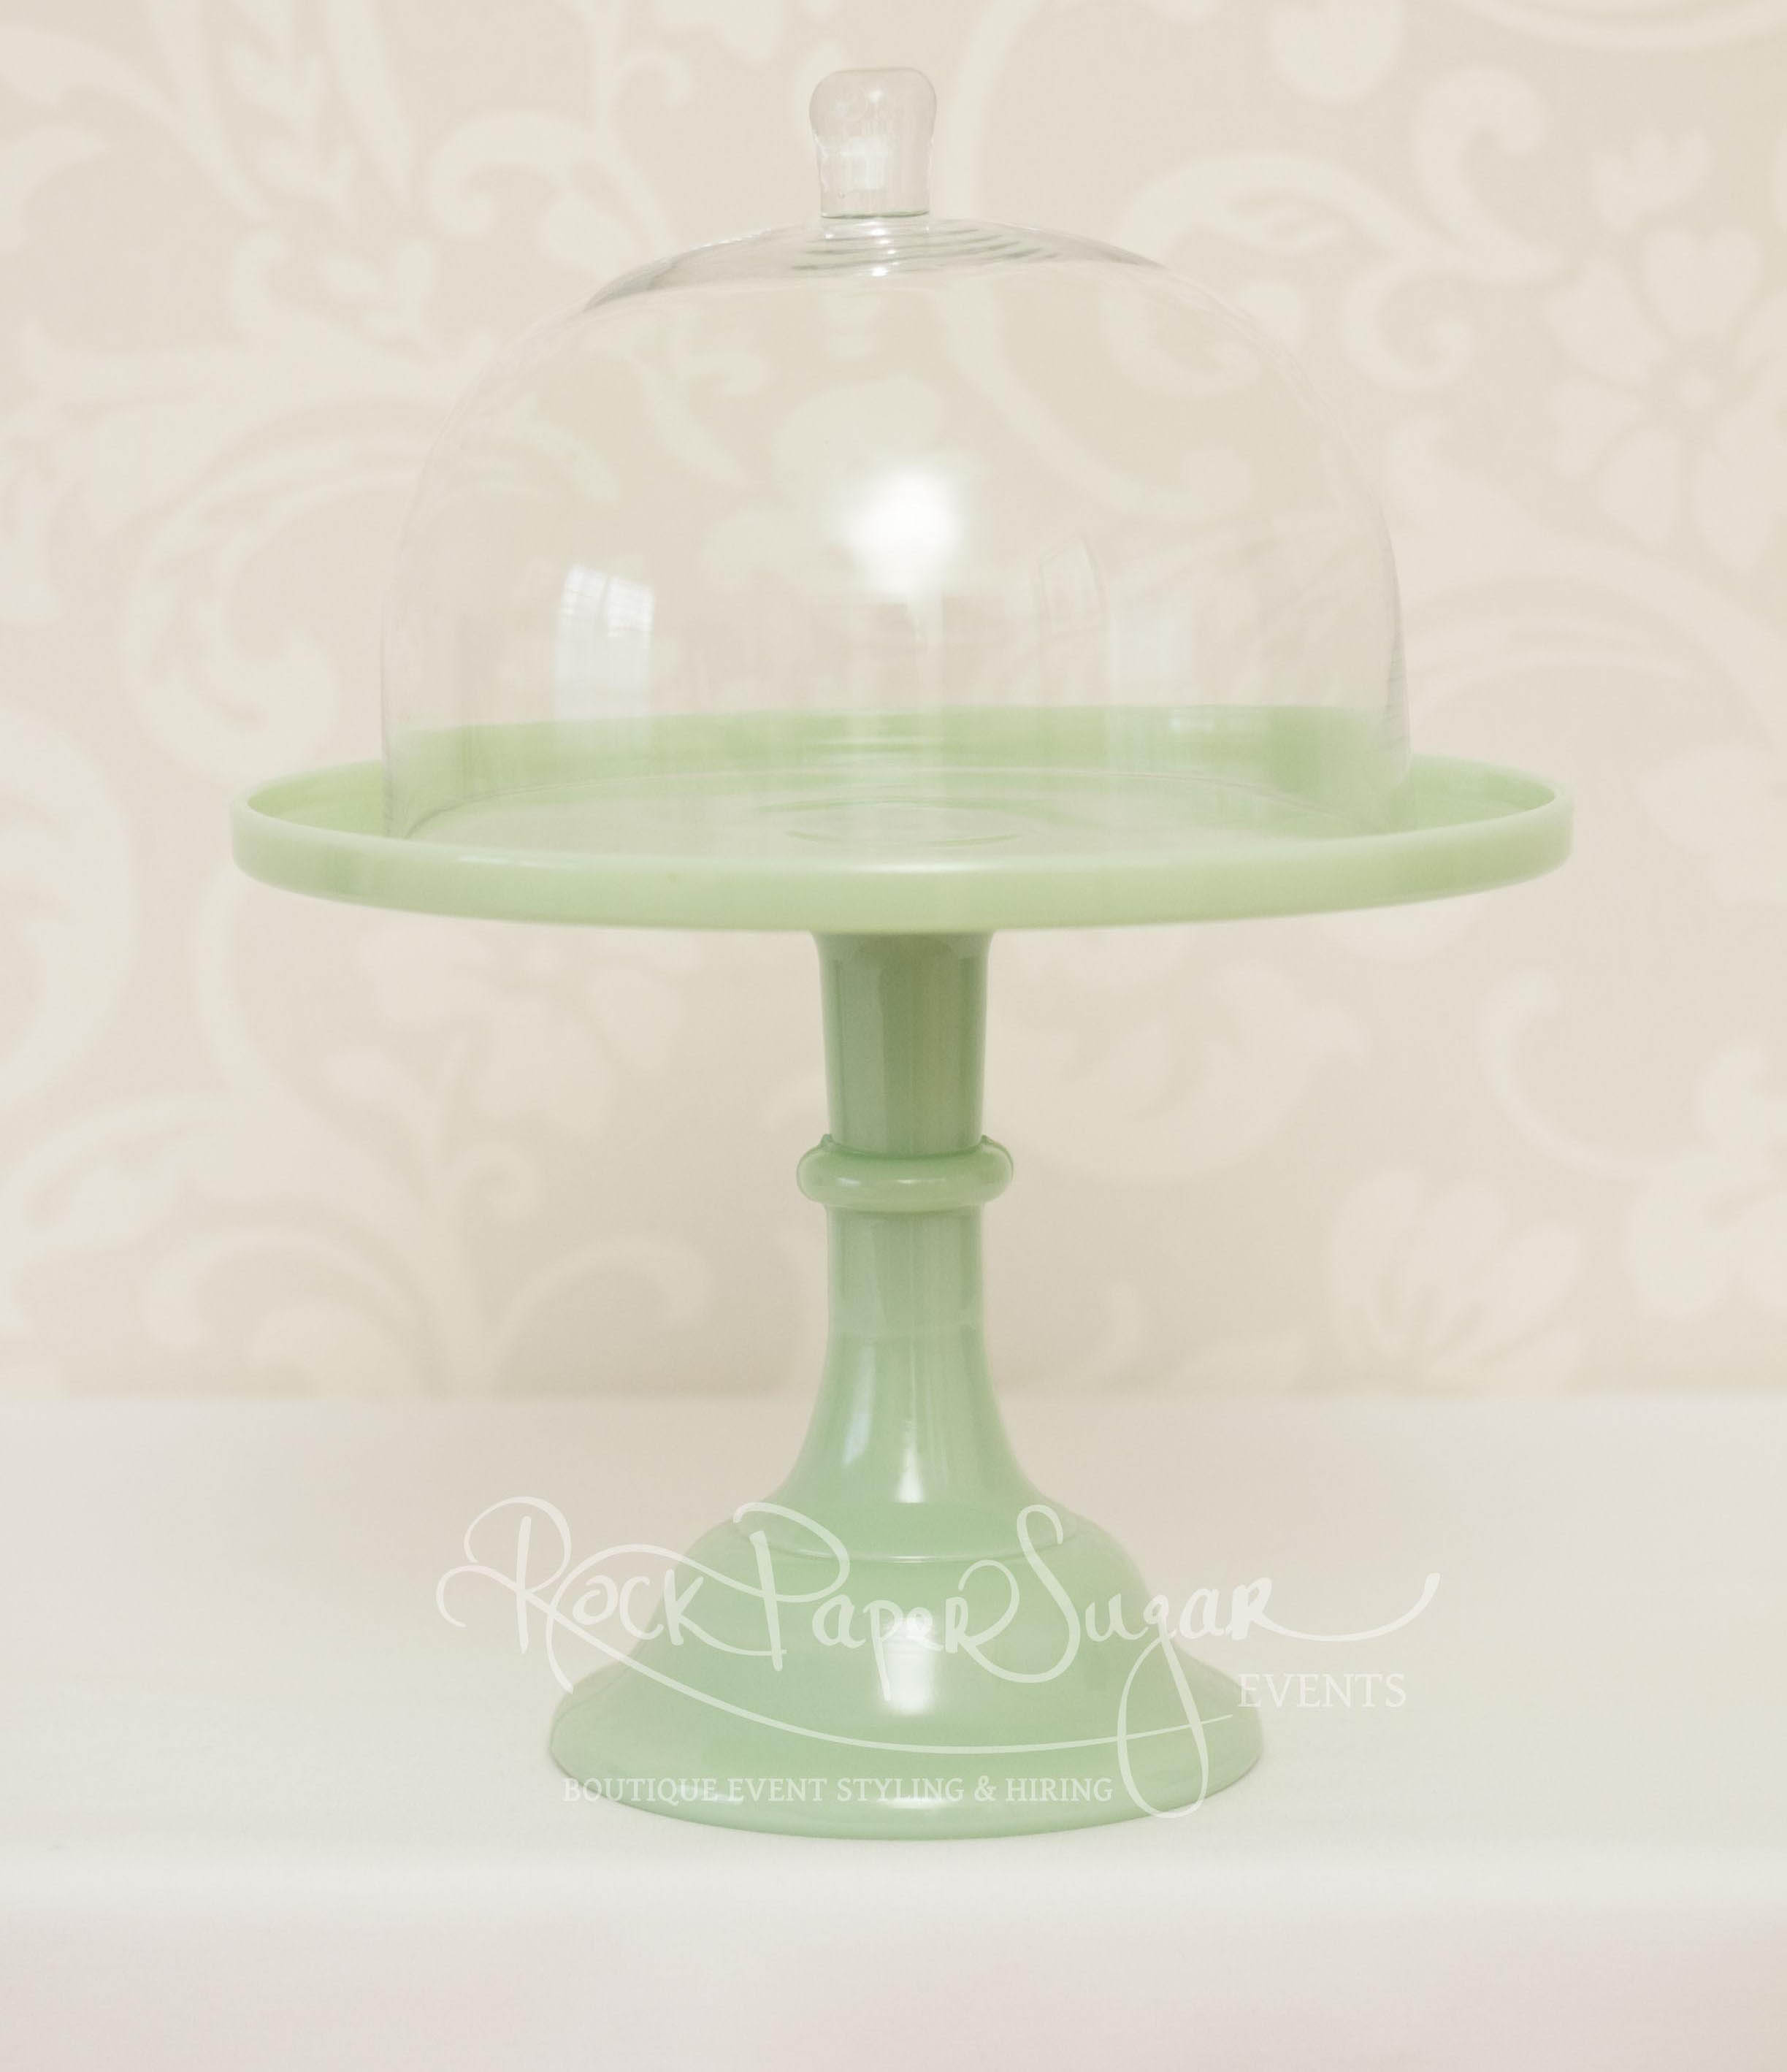 Rock Paper Sugar Events Cake Stands with Dome 004.jpg